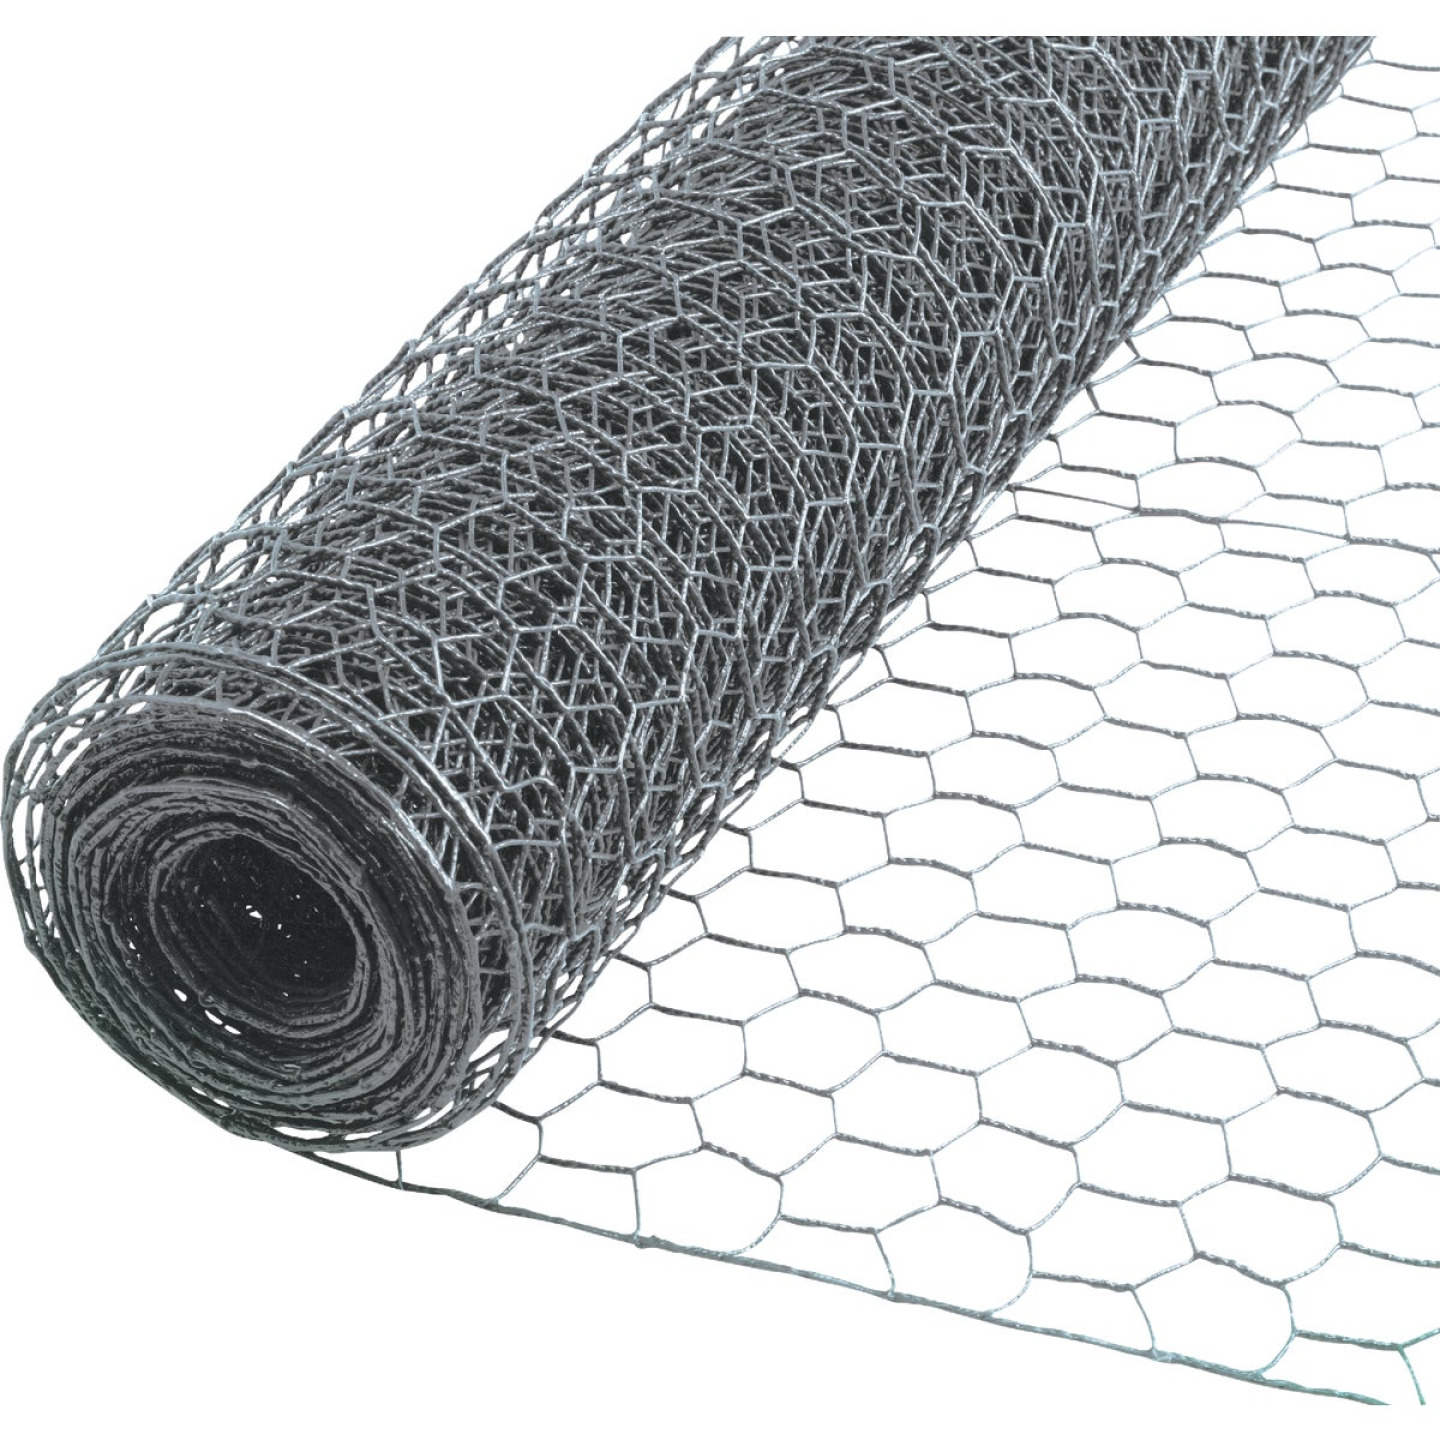 1 In. x 24 In. H. x 10 Ft. L. Hexagonal Wire Poultry Netting Image 1